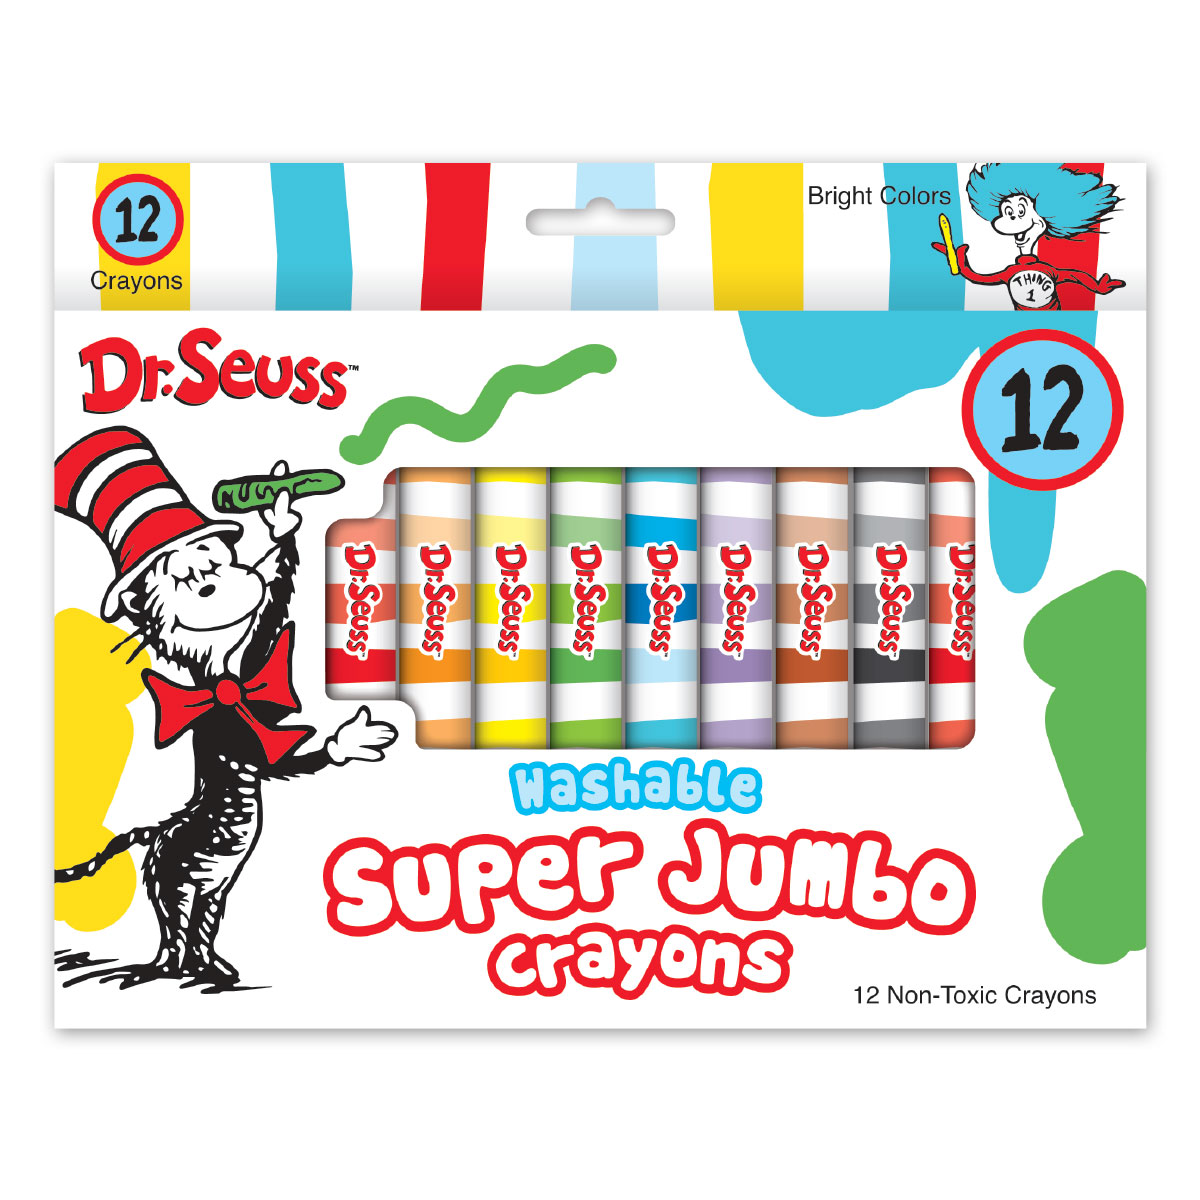 6 Pack Dr 72 Crayons Total Assorted Colors Seuss 12-Count Washable Jumbo Crayons Great for Classrooms